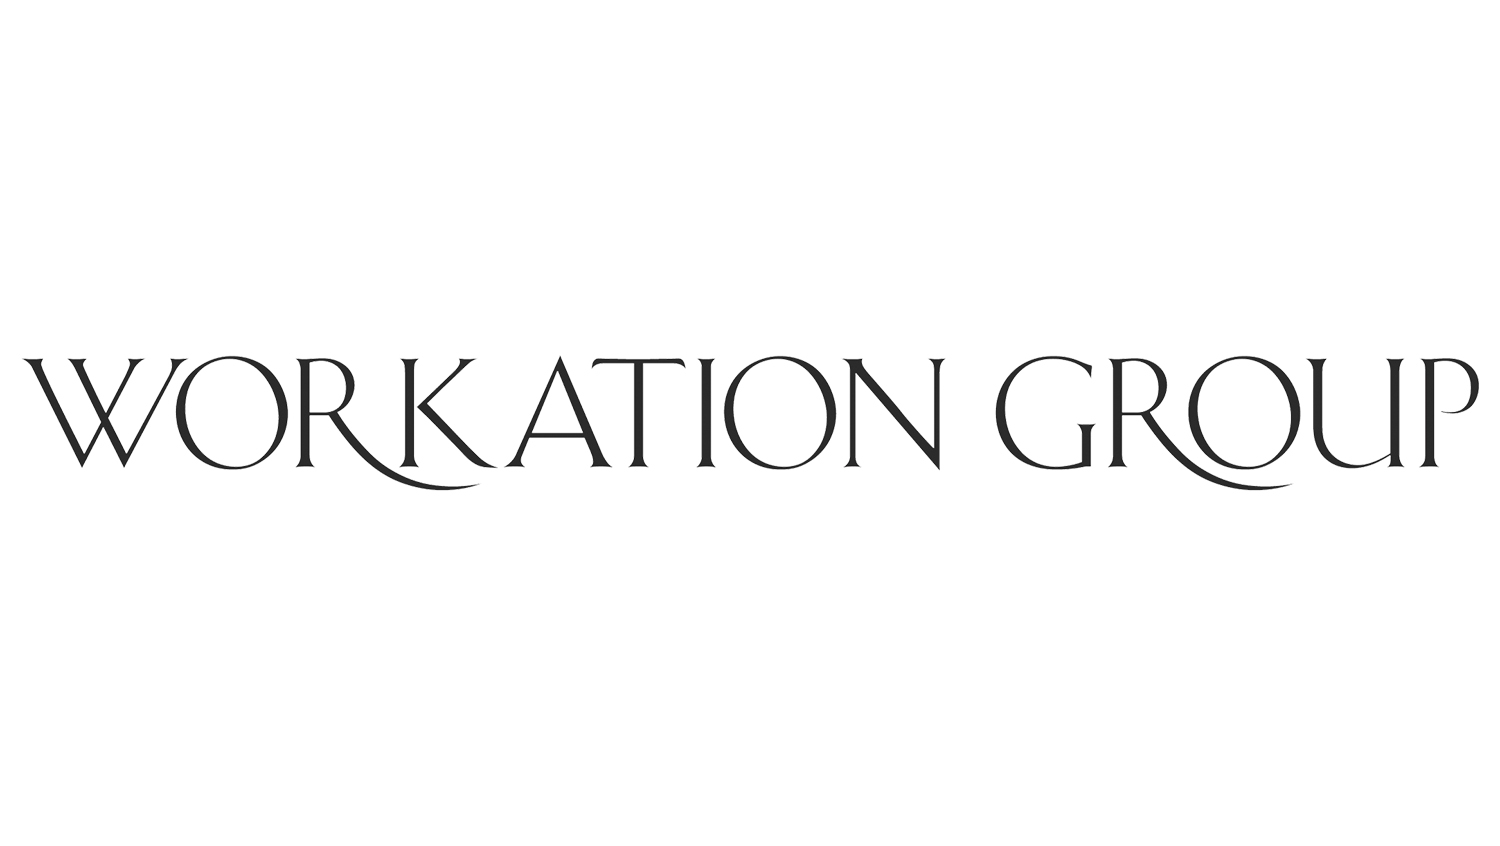 Workation Group